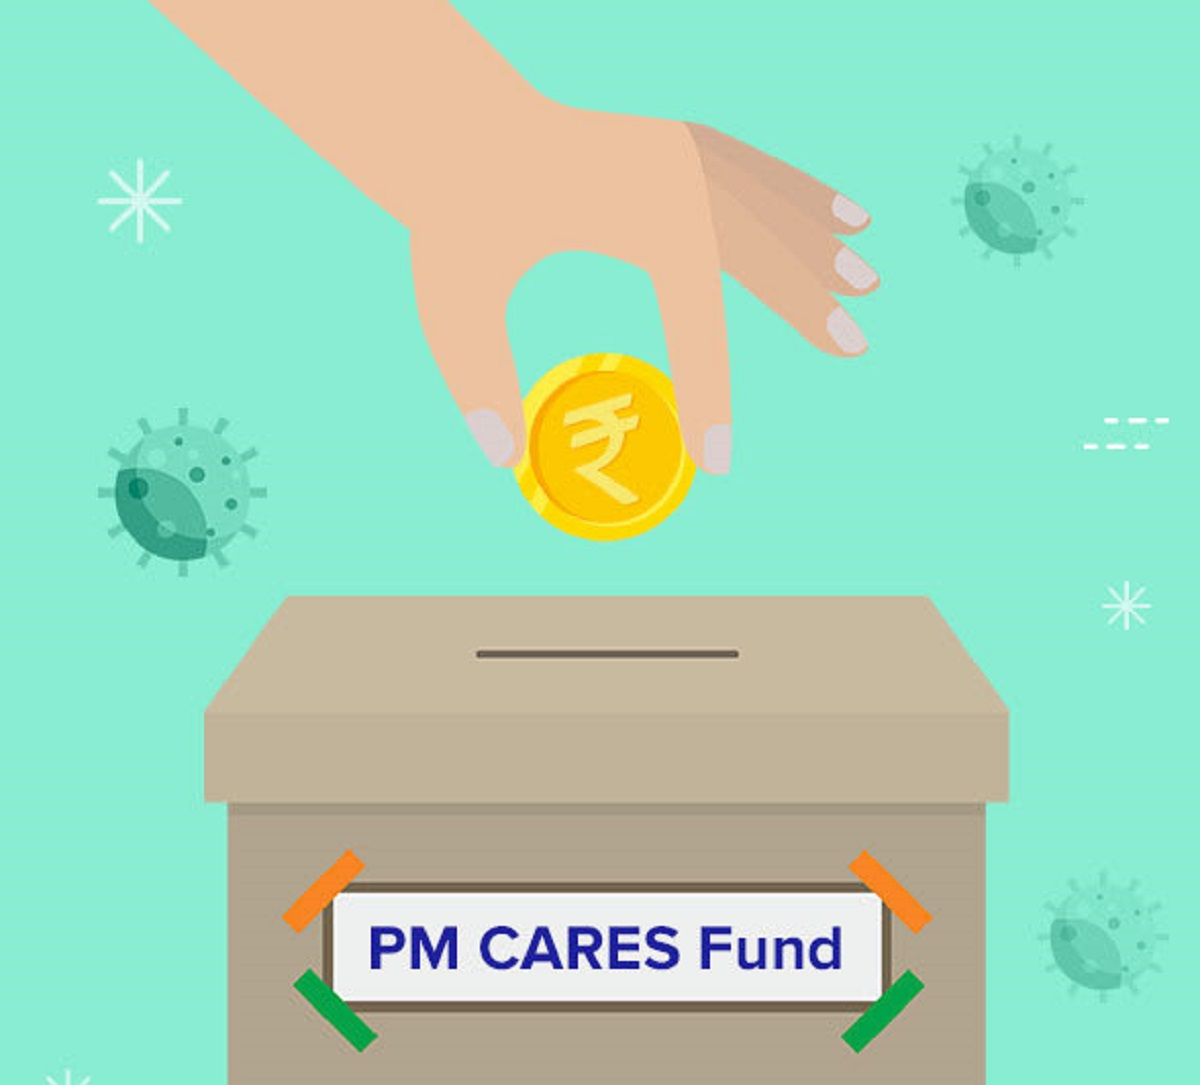 Supreme Court dismisses the petition filed against PM Cares Fund